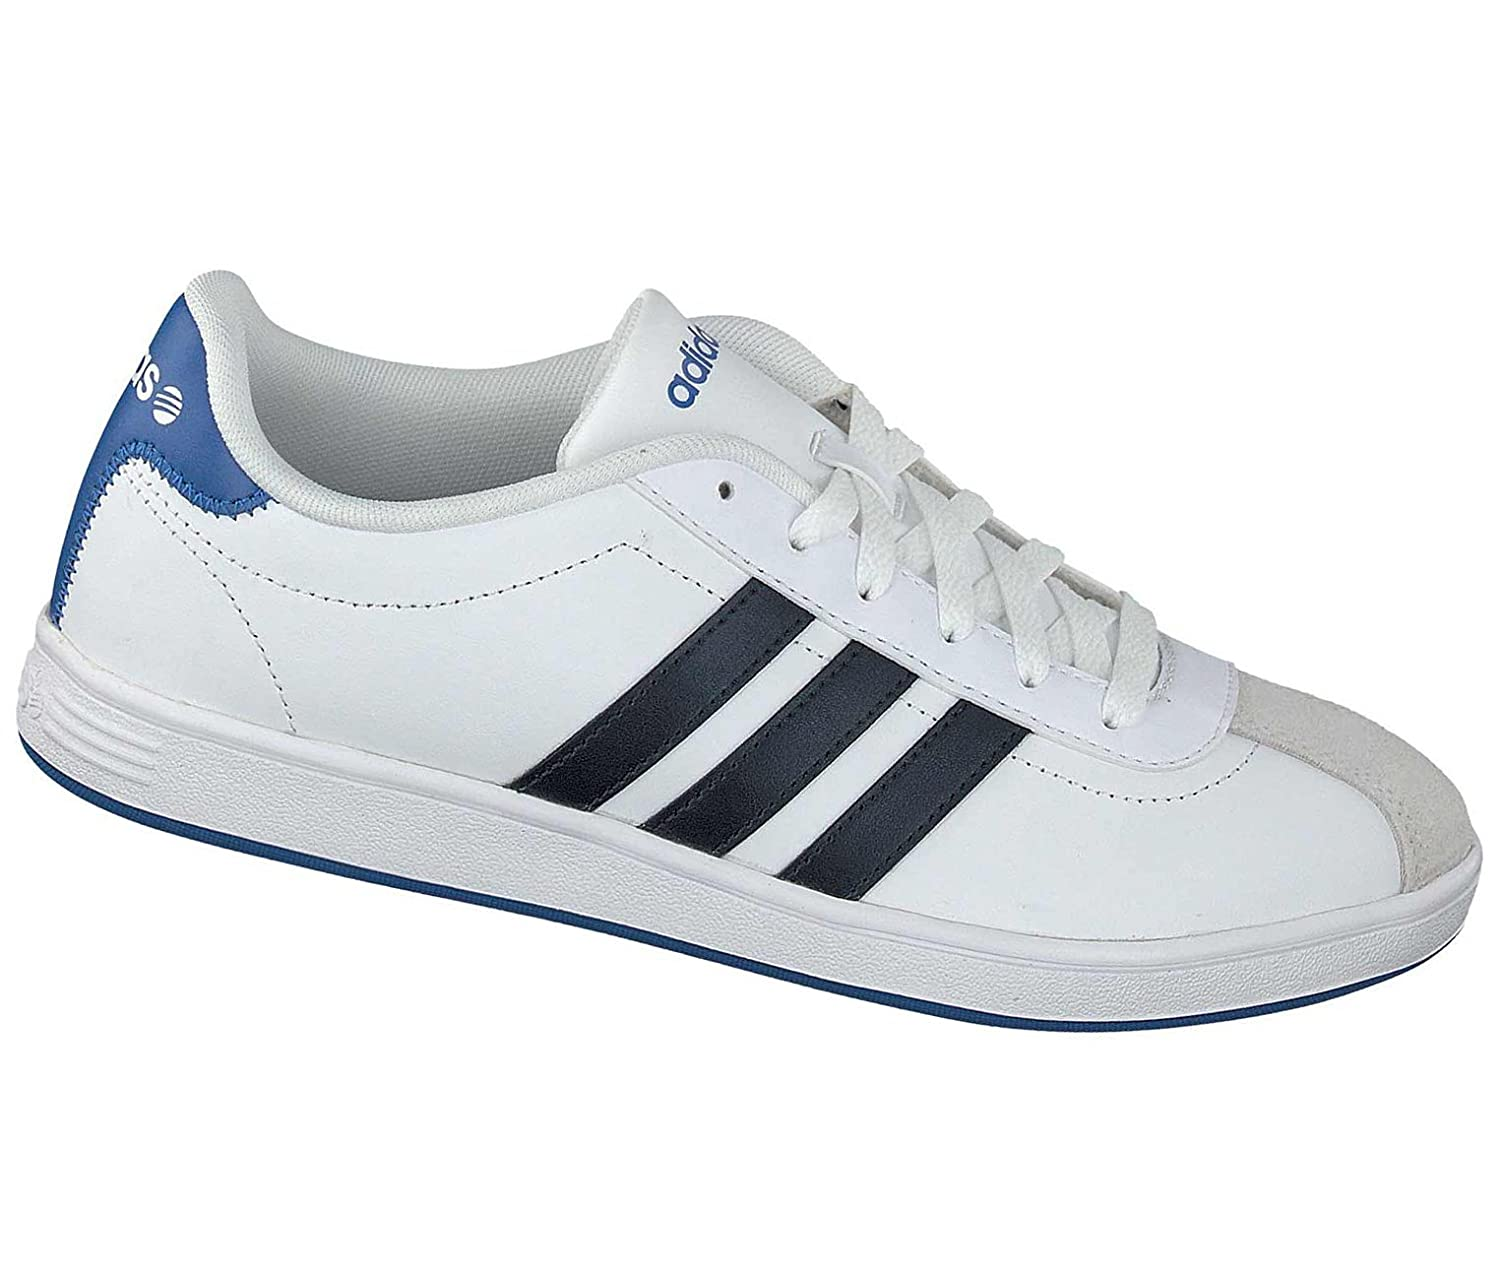 temperament shoes promo code best authentic Adidas Neo Label VL Court Classic Daily Trainers Mens ...